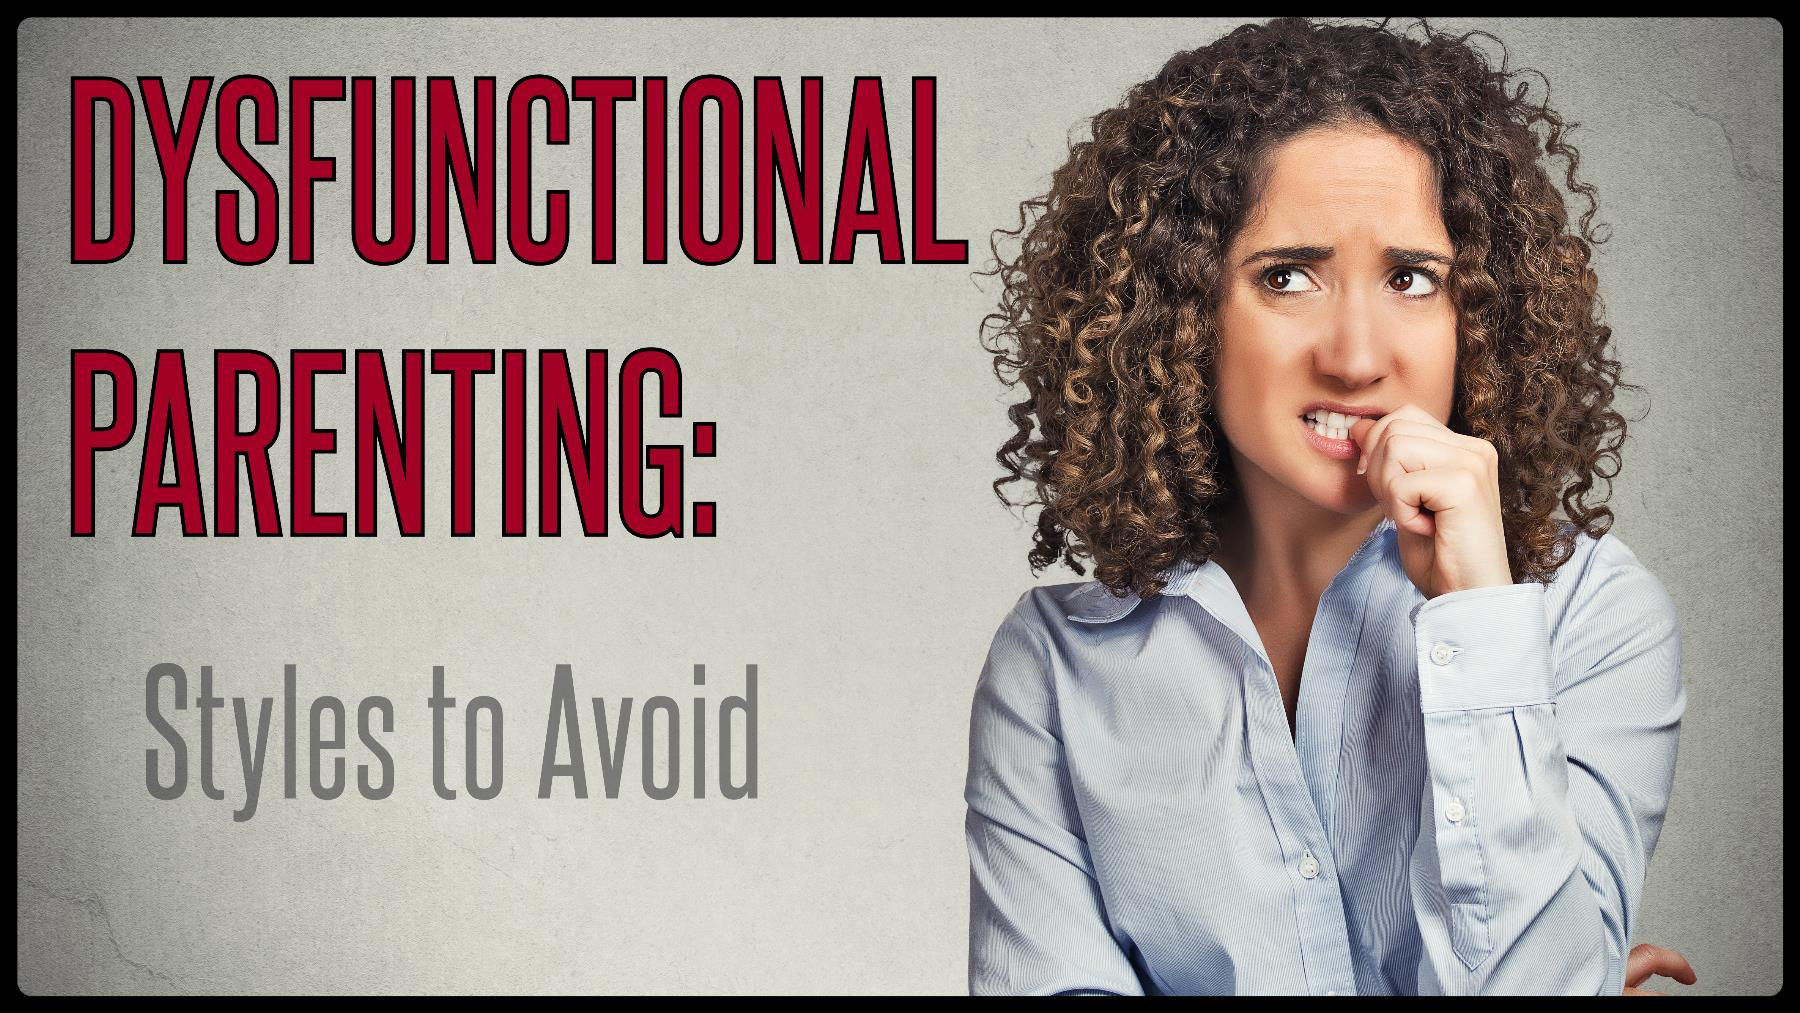 Dysfunctional Parenting: Styles to Avoid